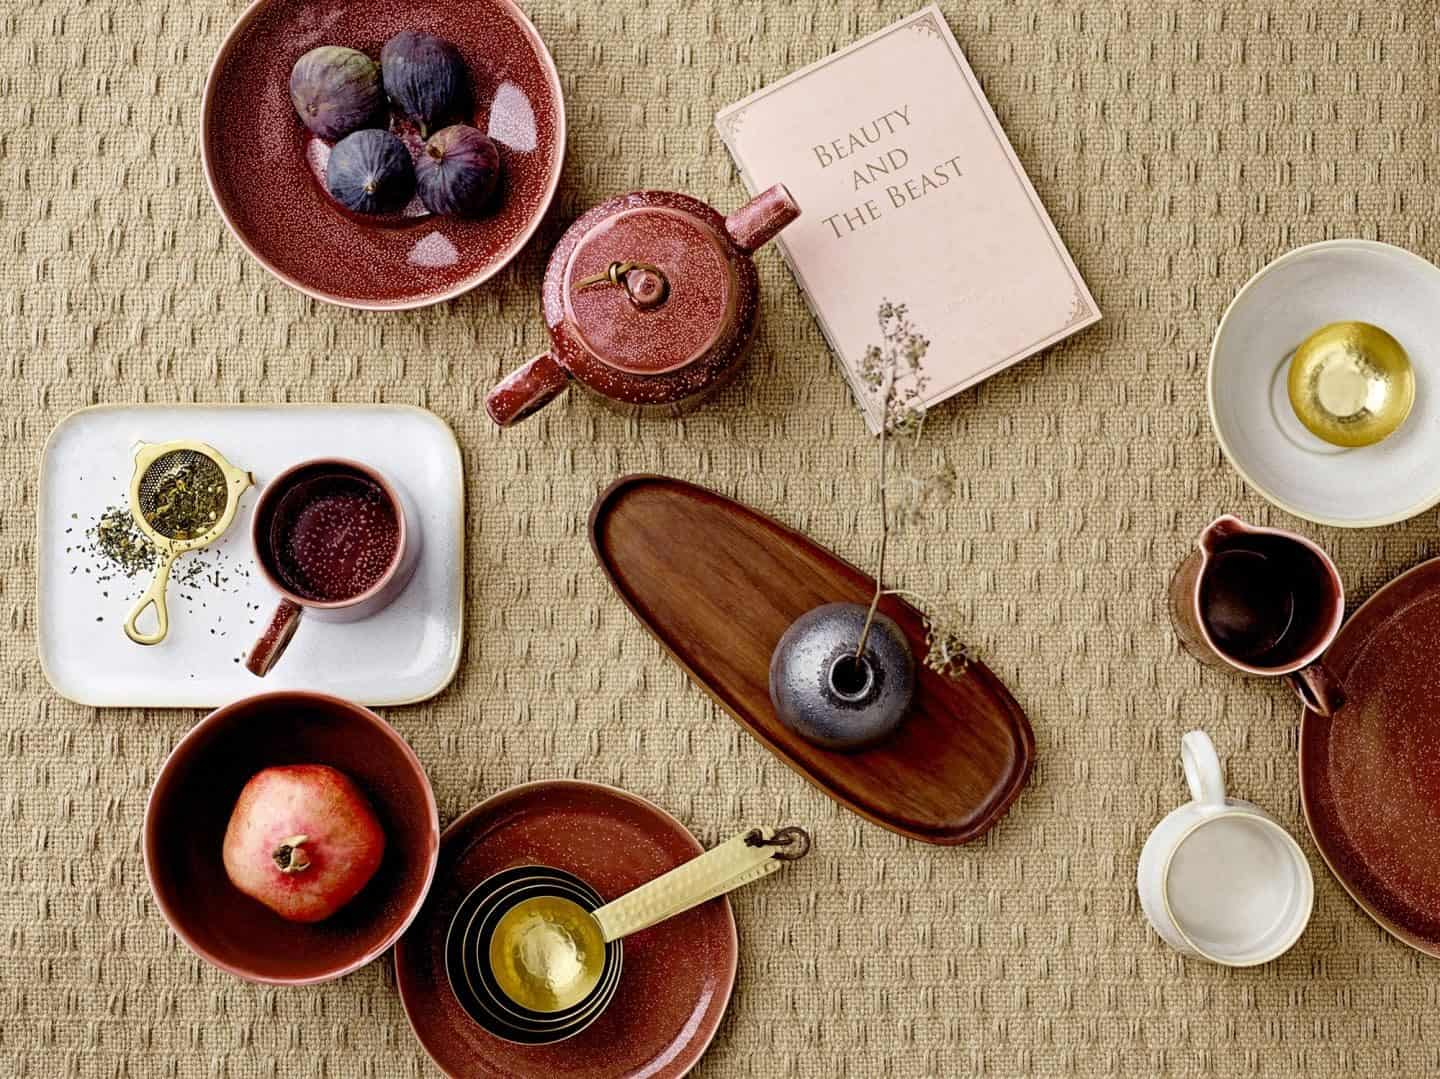 Shekåbba The Danish Home is an online retailer that stocks a range of Danish homewares. Flatlay of rustic ceramics on a textured tablecloth